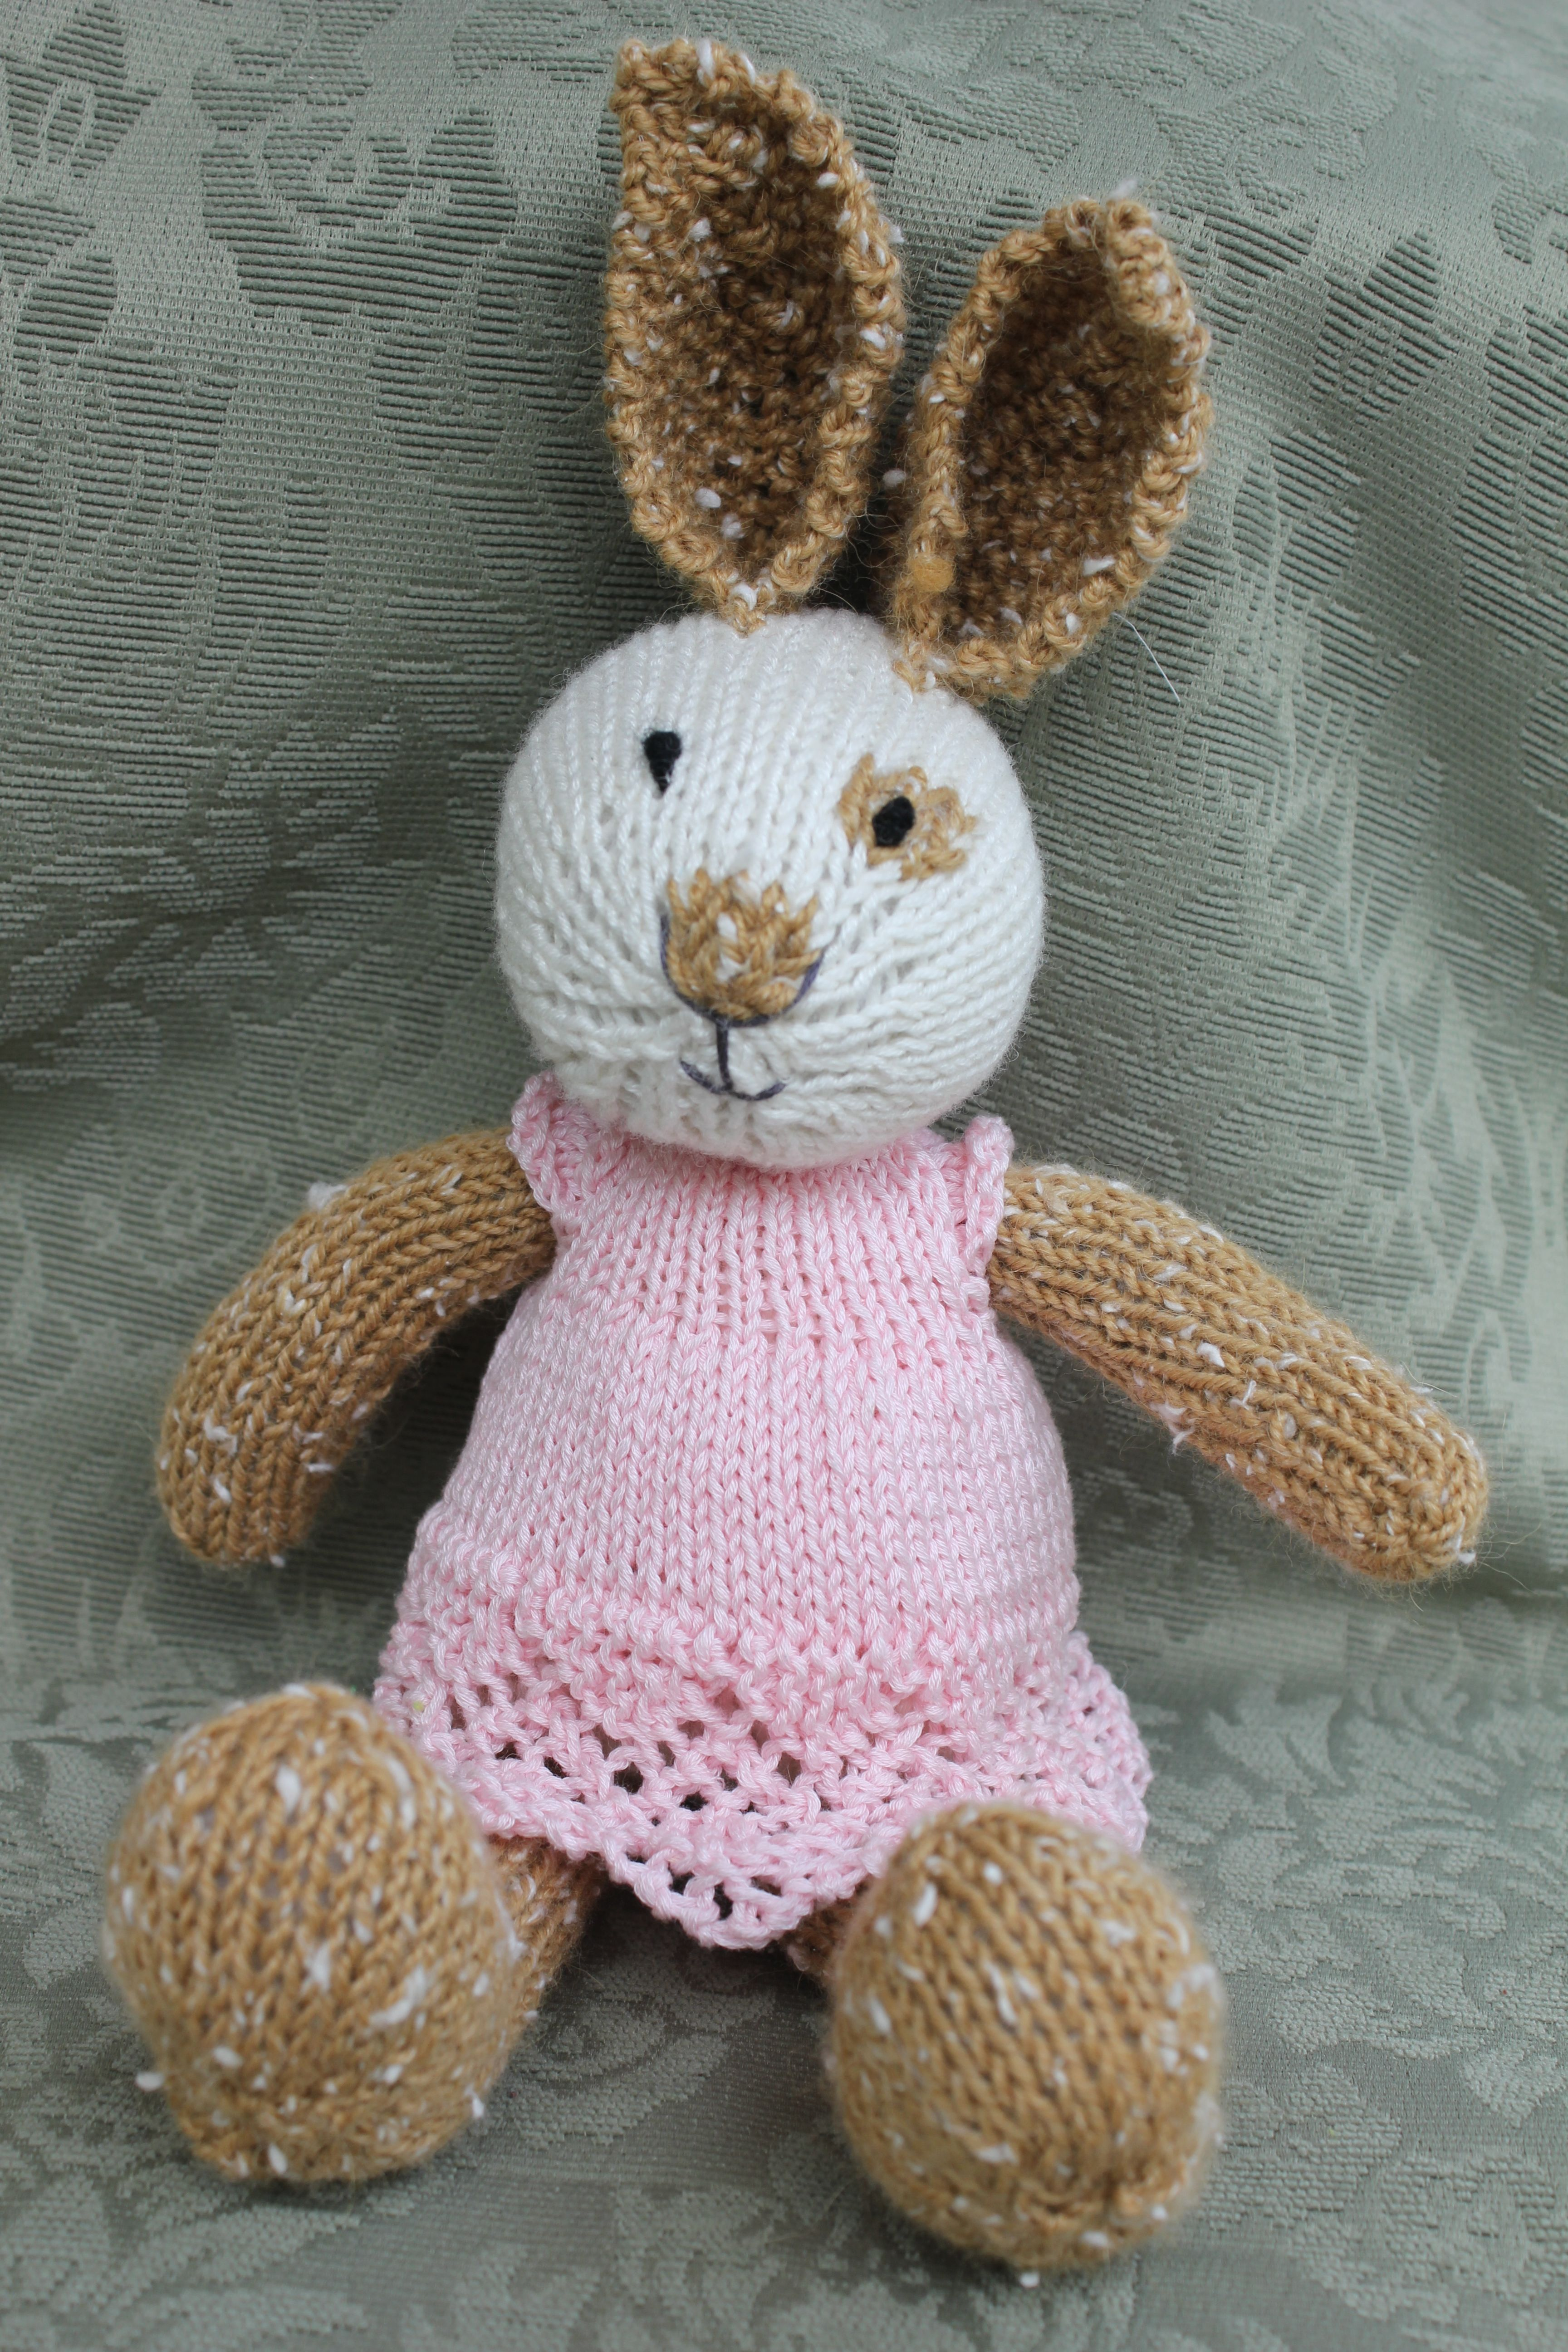 Knitted rabbit pattern by julie williams little cotton rabbits knitted rabbit pattern by julie williams little cotton rabbits bankloansurffo Choice Image